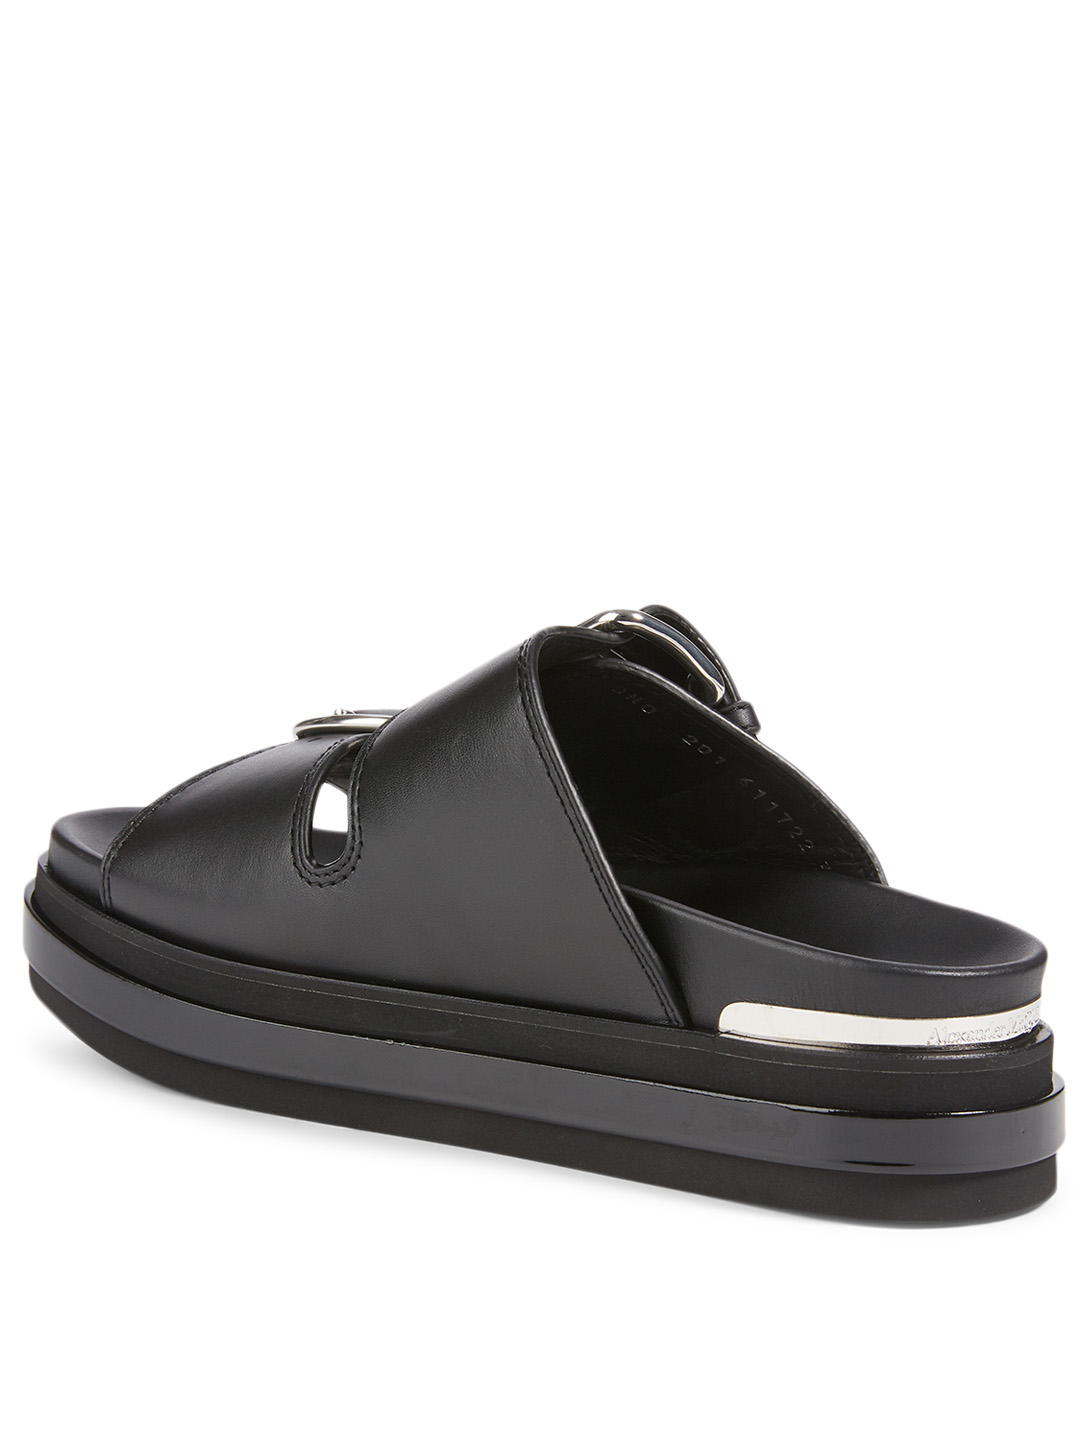 ALEXANDER MCQUEEN Trompe L'Oeil Leather Slide Sandals Women's Black